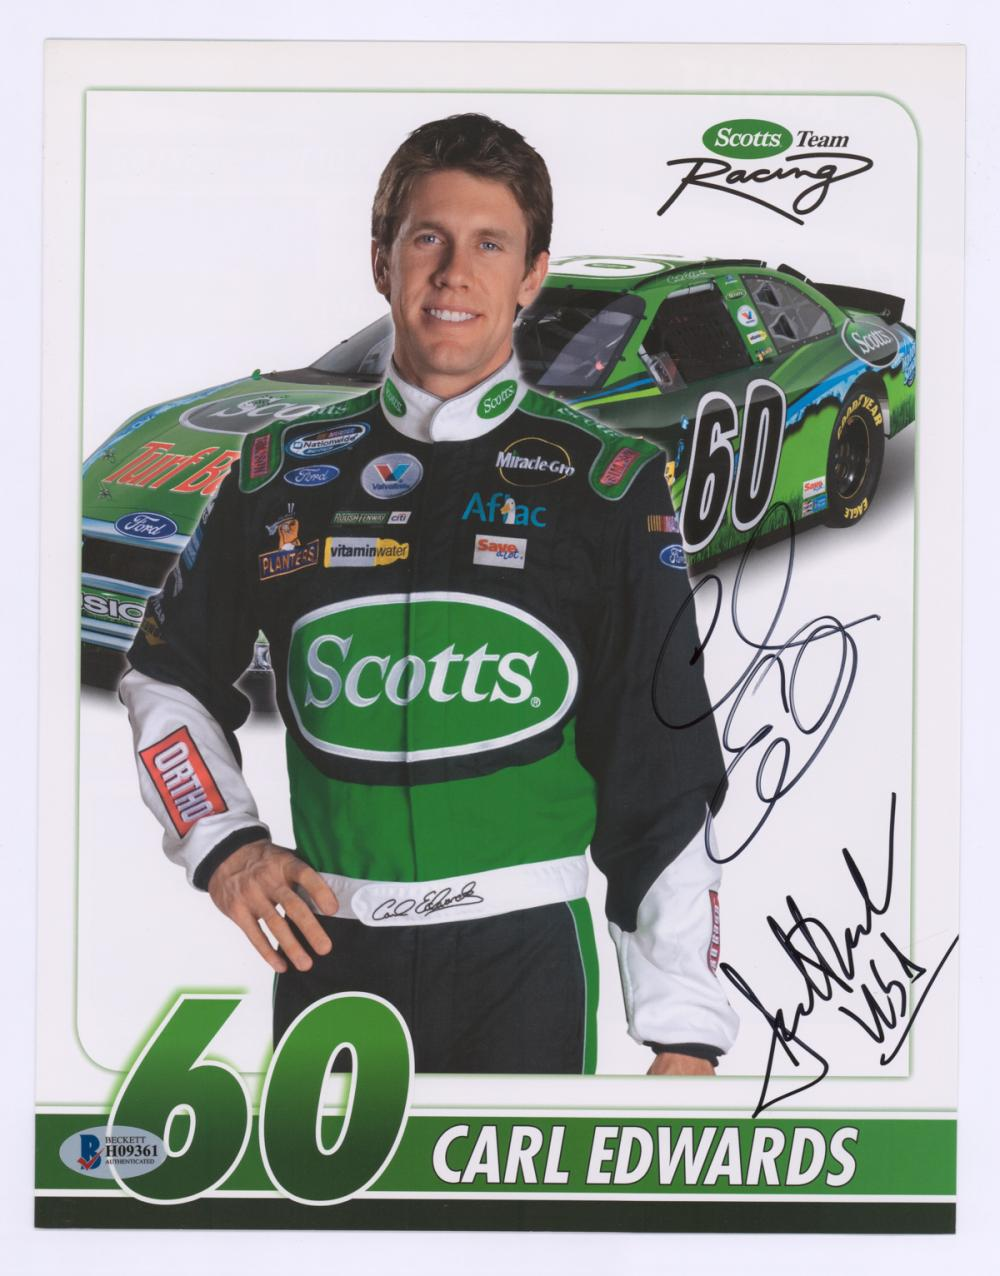 Lot 683: Nascar Drivers Signed Photos (4) Beckett COA's